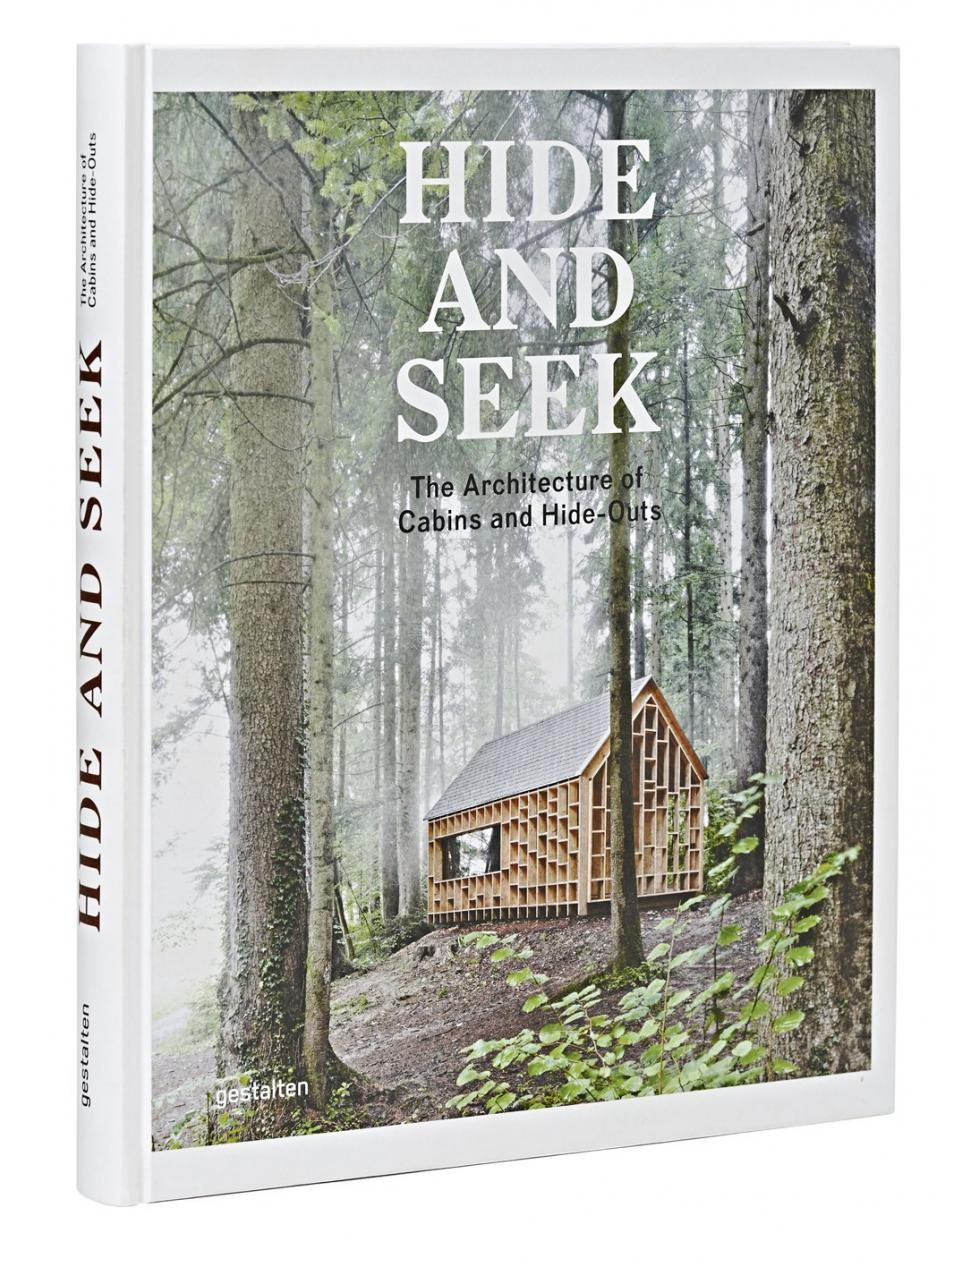 Book : Hide and Seek The Architecture of Cabins